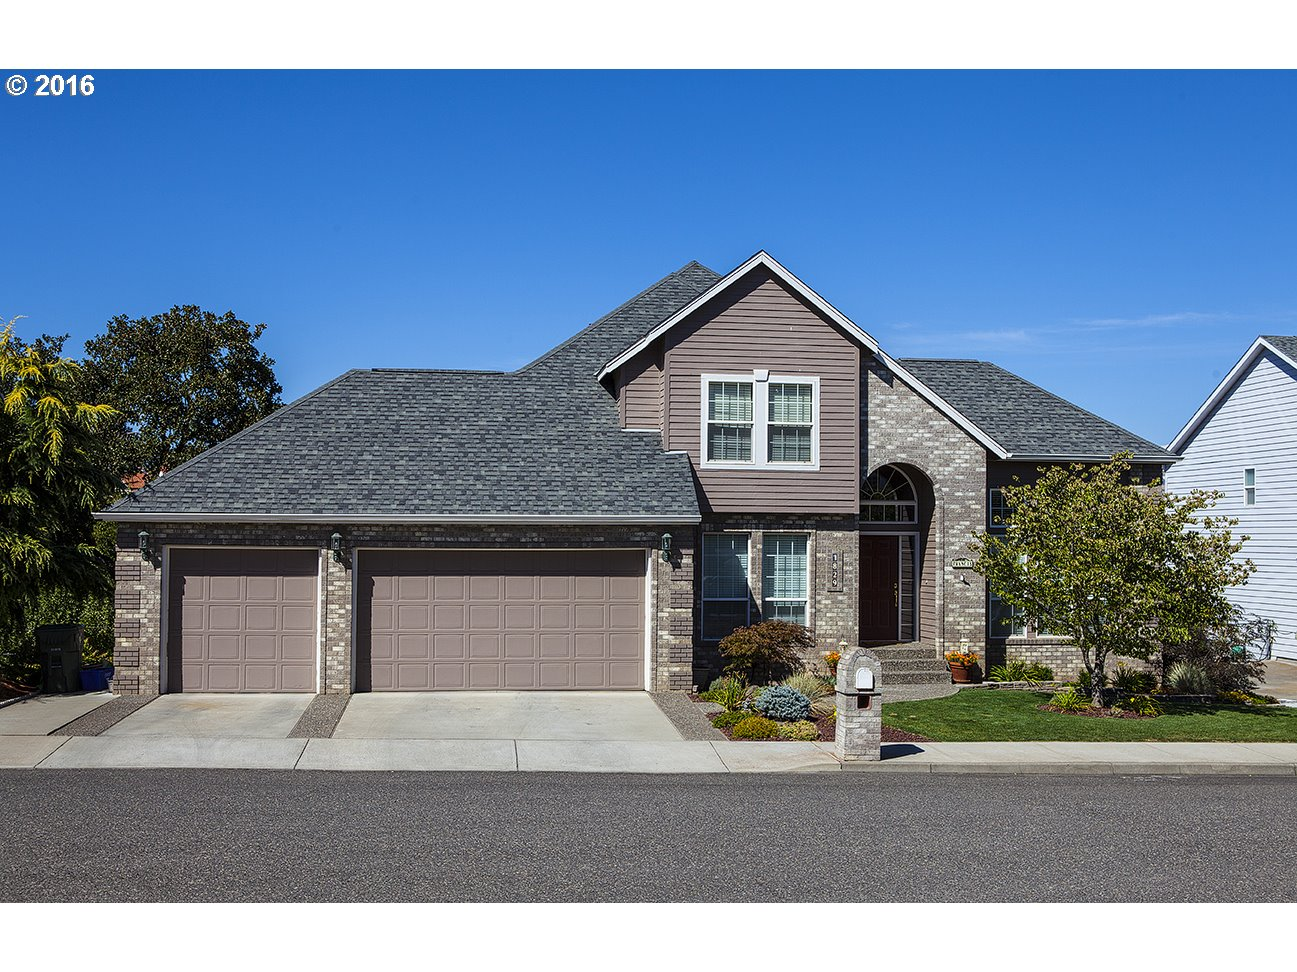 1829 MINNESOTA ST, The Dalles, OR 97058